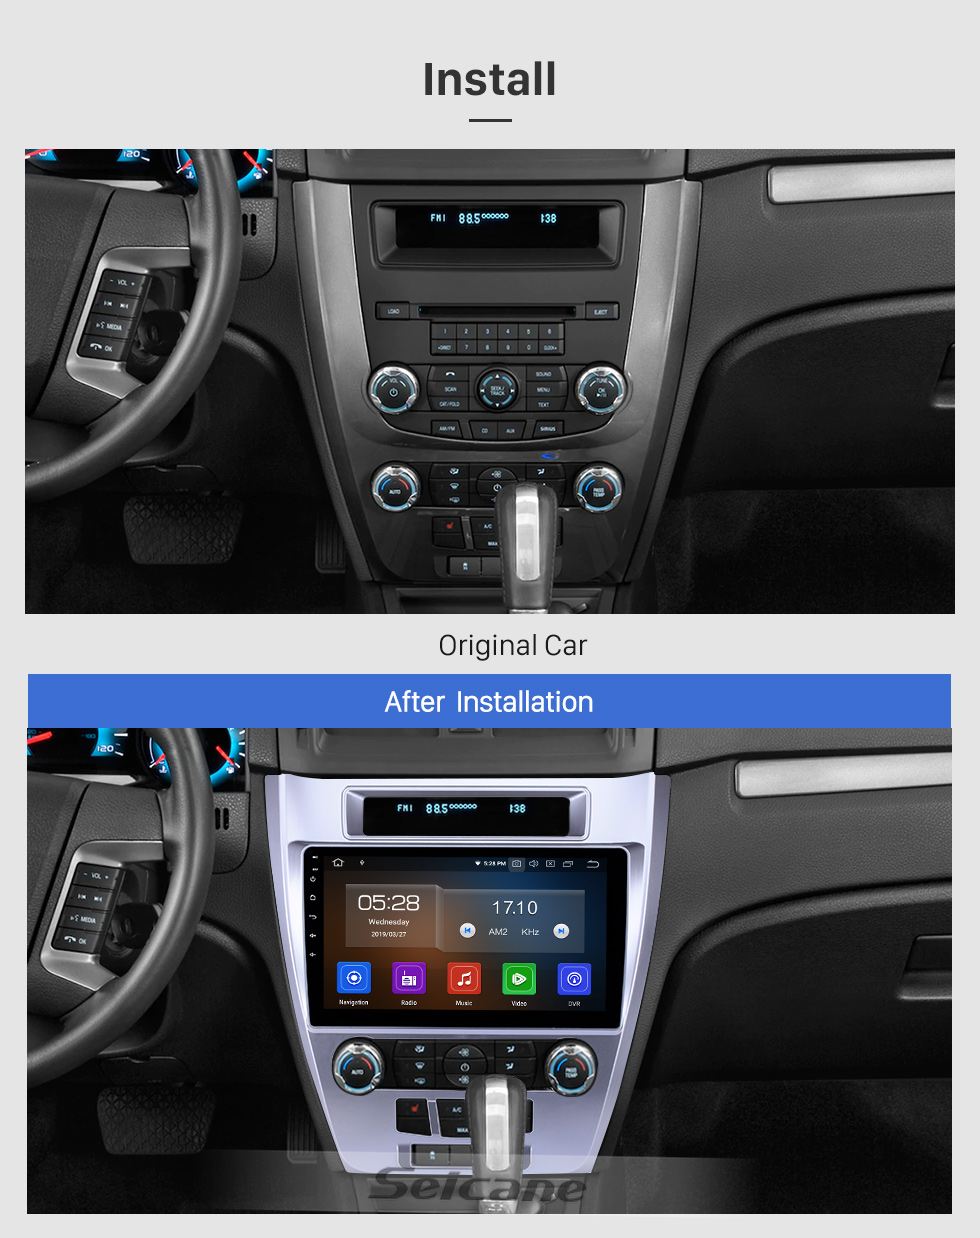 Seicane 10.1 pulgadas 2009-2012 Ford Mondeo Android 9.0 Navegación GPS Radio Bluetooth HD Pantalla táctil AUX USB Música Carplay compatible 1080P Video Mirror Link